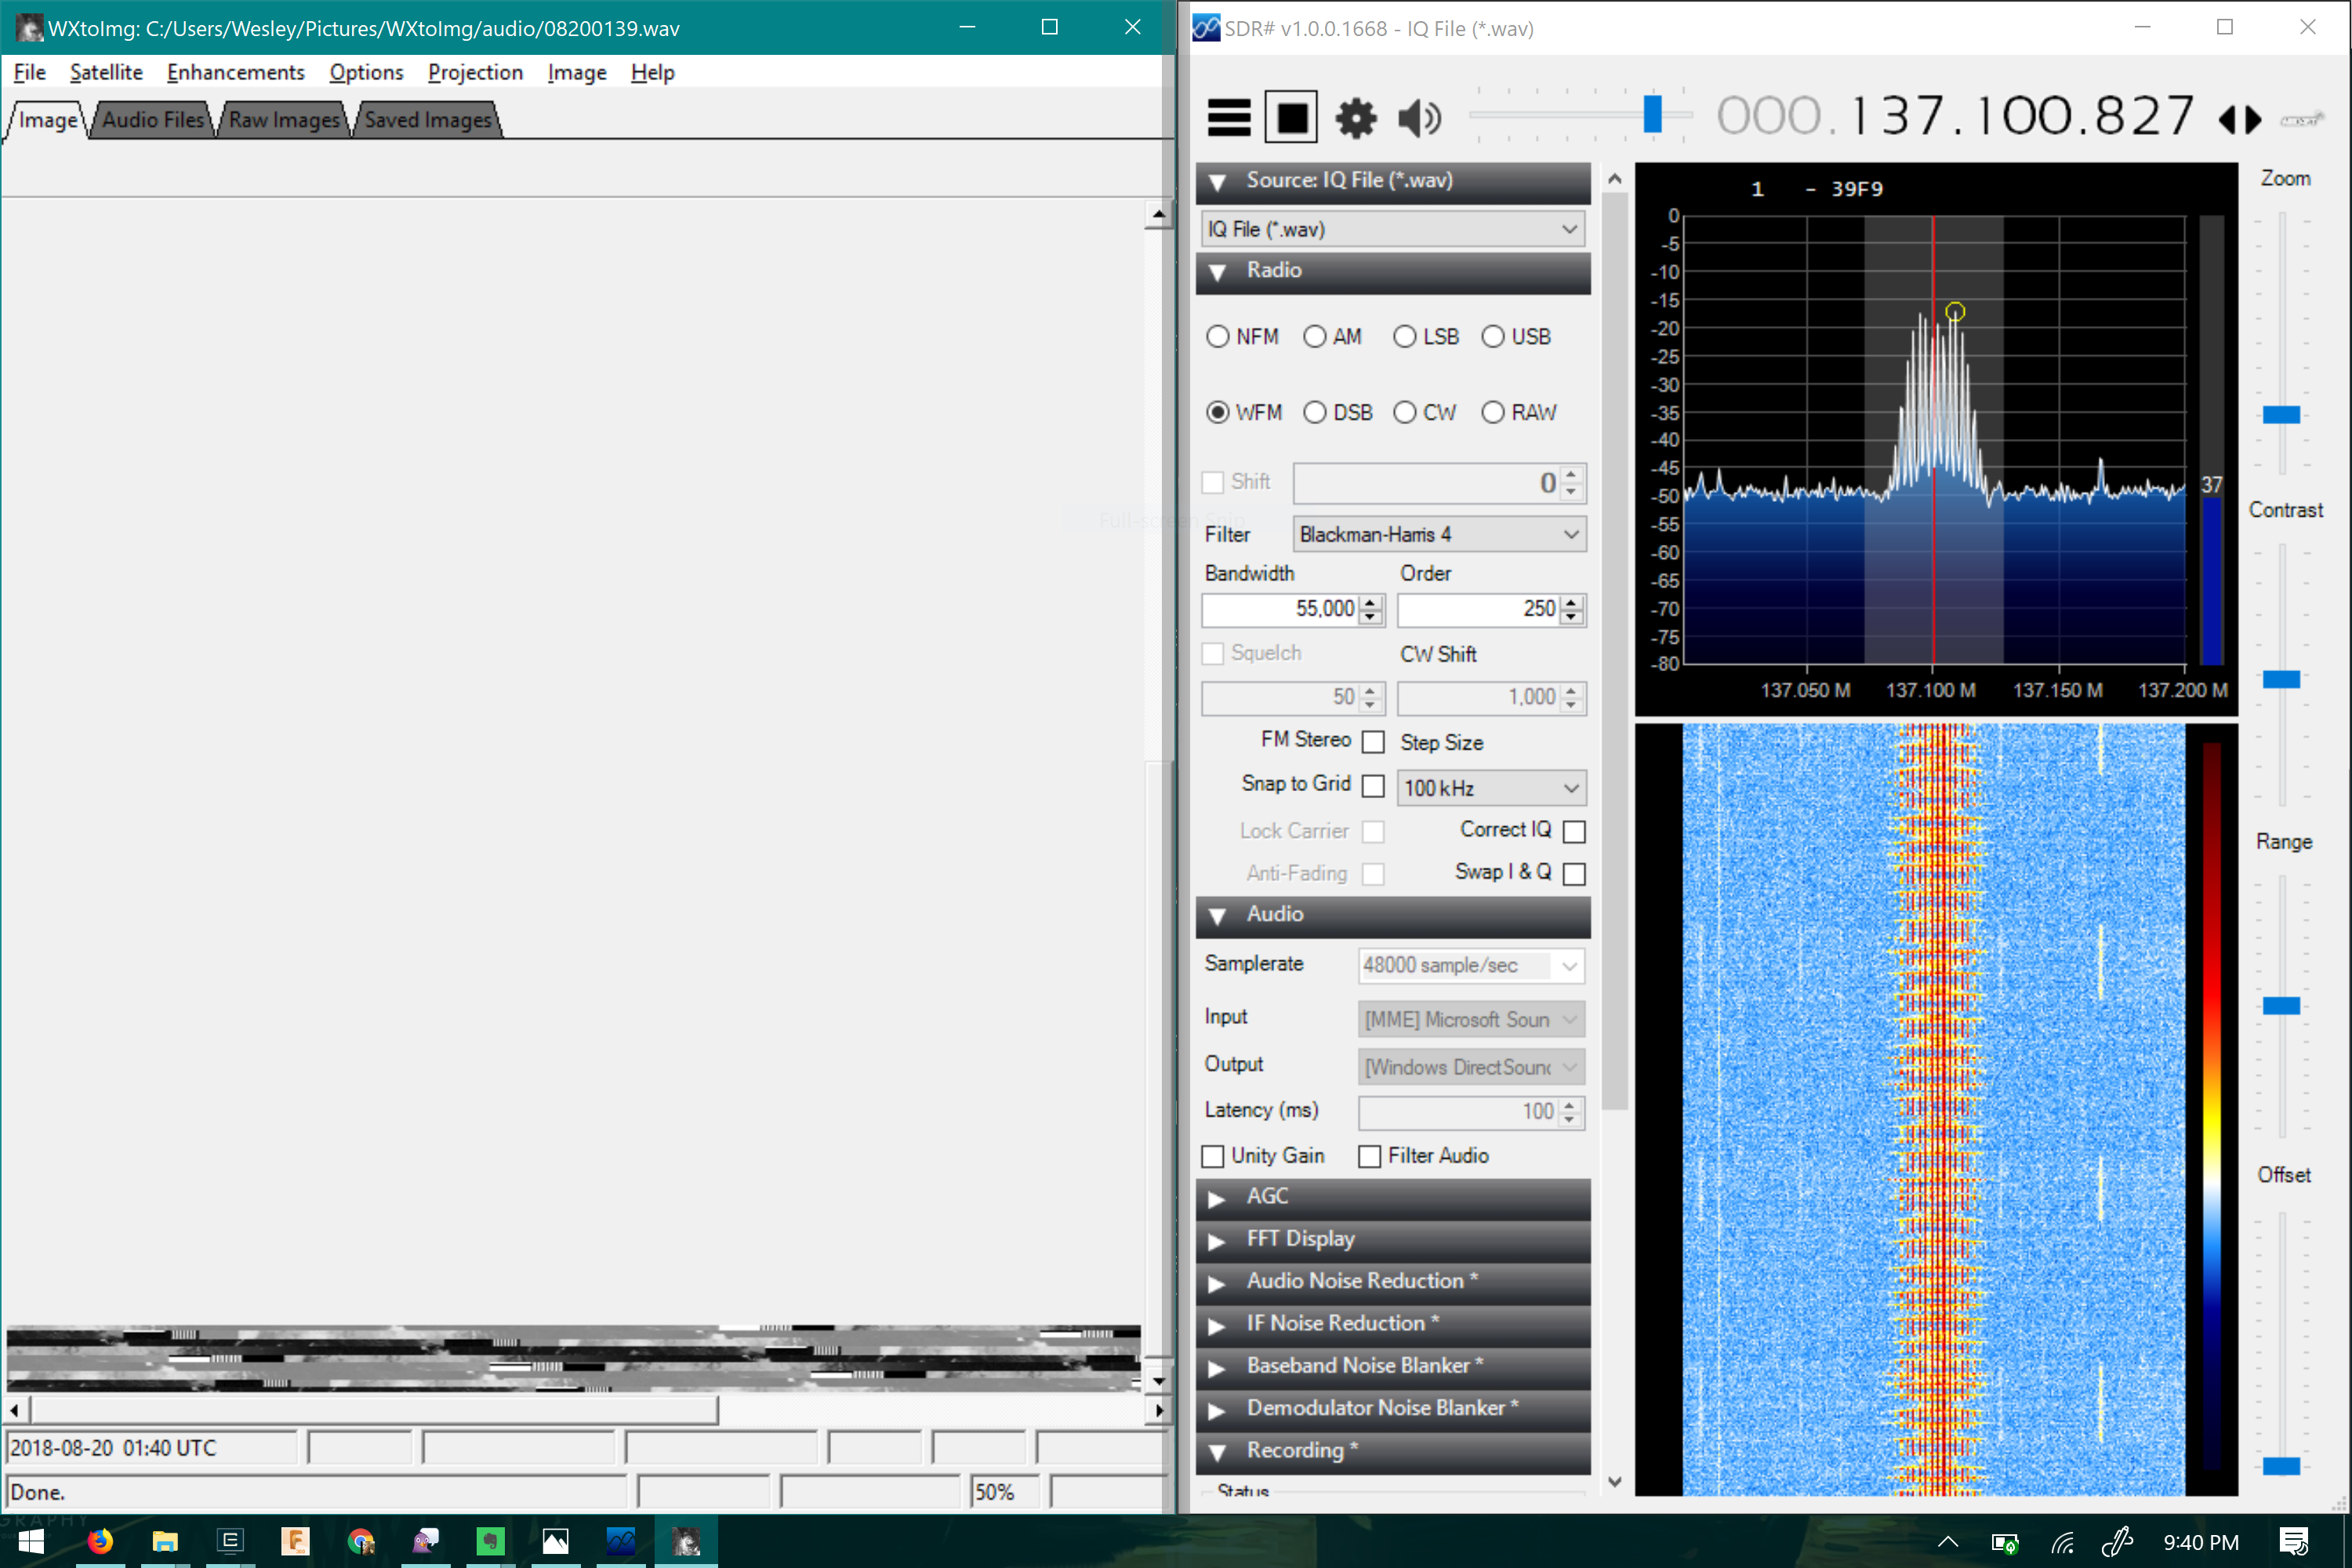 SDR sharp and wxtoimg decoding a signal